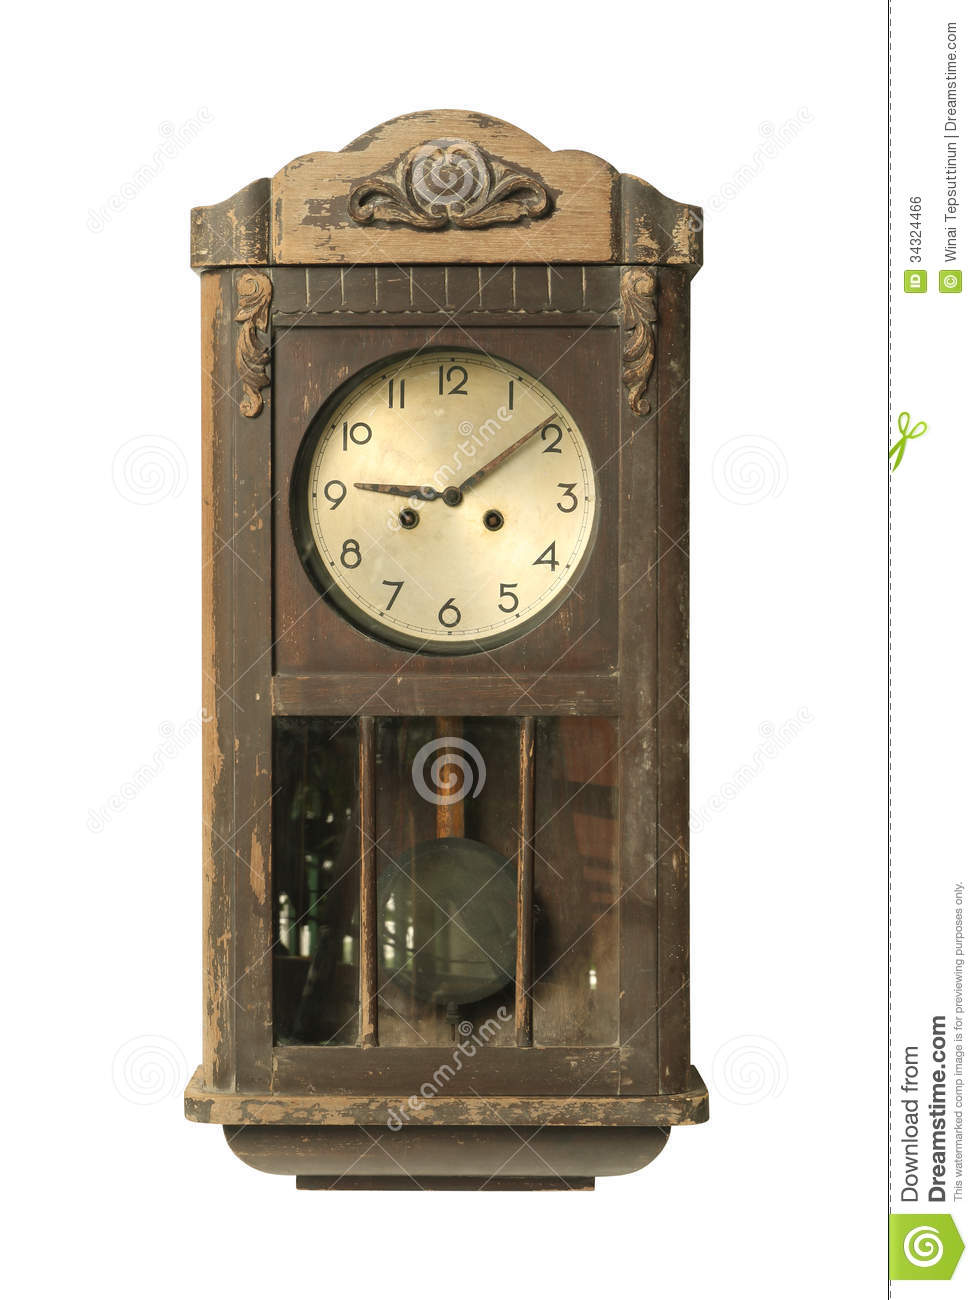 Vintage Wall Clock Royalty Free Stock Image - Image: 34324466